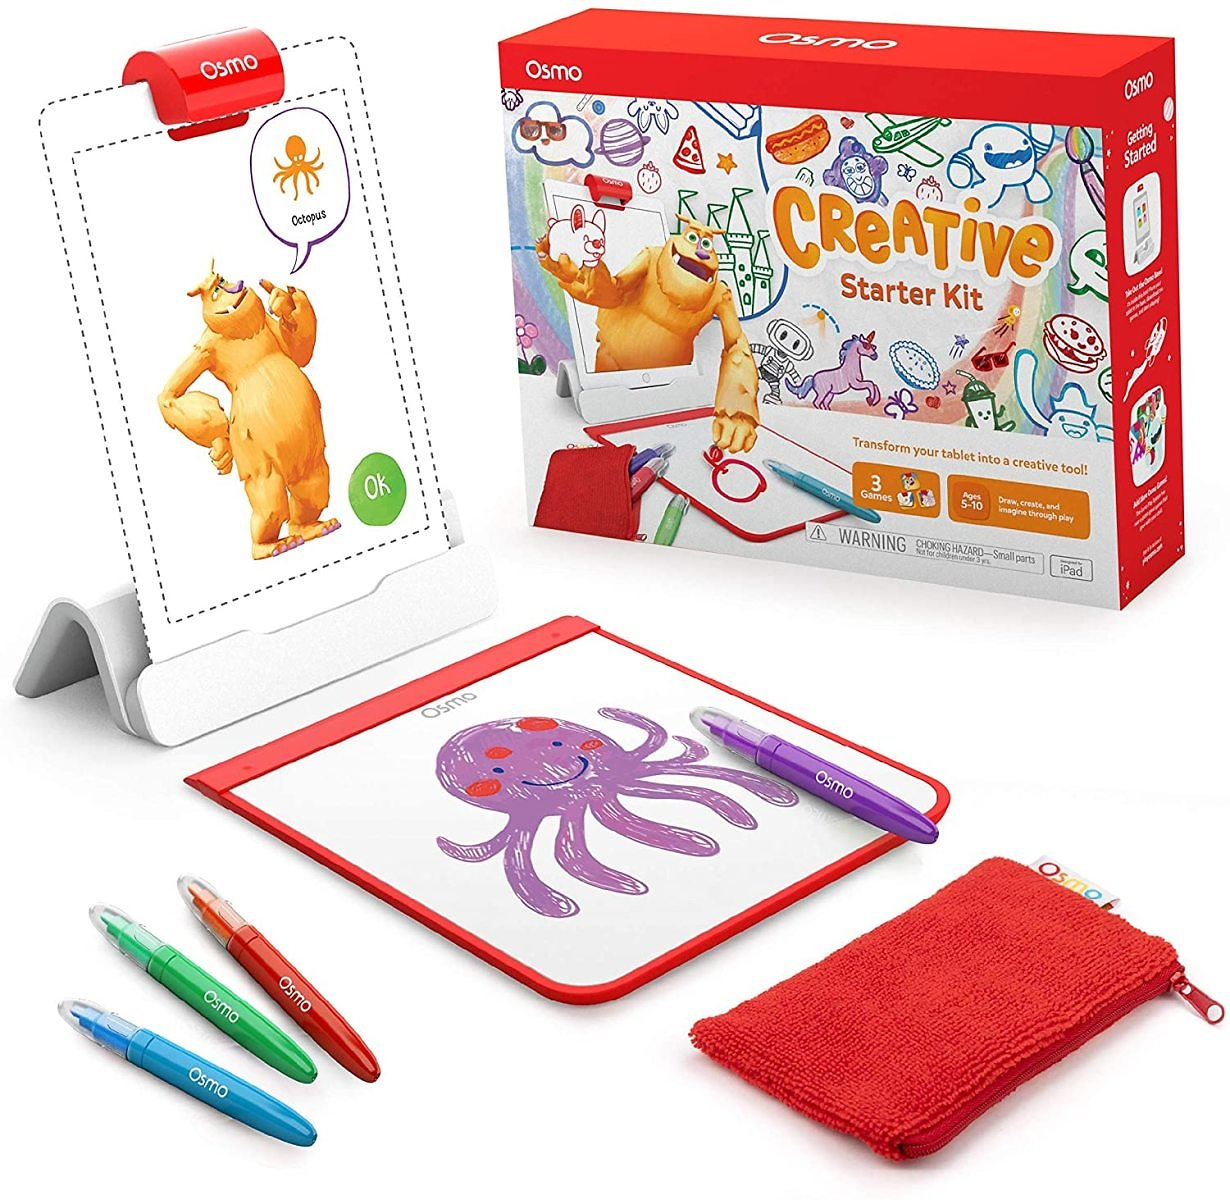 30% OFF - Creative Starter Kit for IPad - 3 Educational Learning Games - Ages 5-10 - Drawing, Word Problems & Early Physics